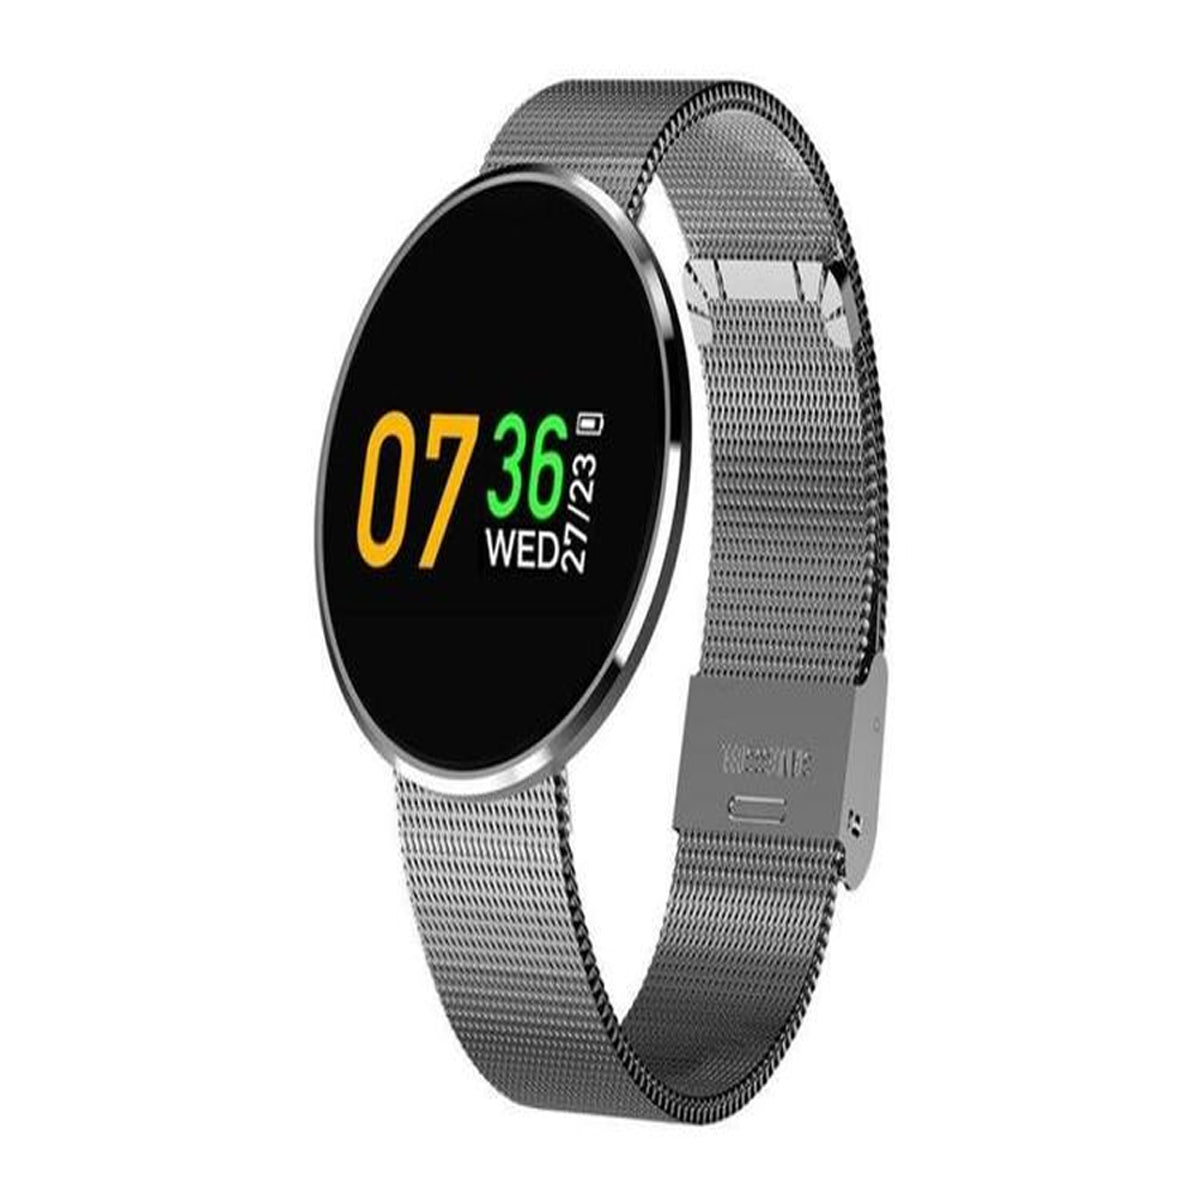 Waterproof Life Smartwatch with Detachable Strap & Large Color Screen